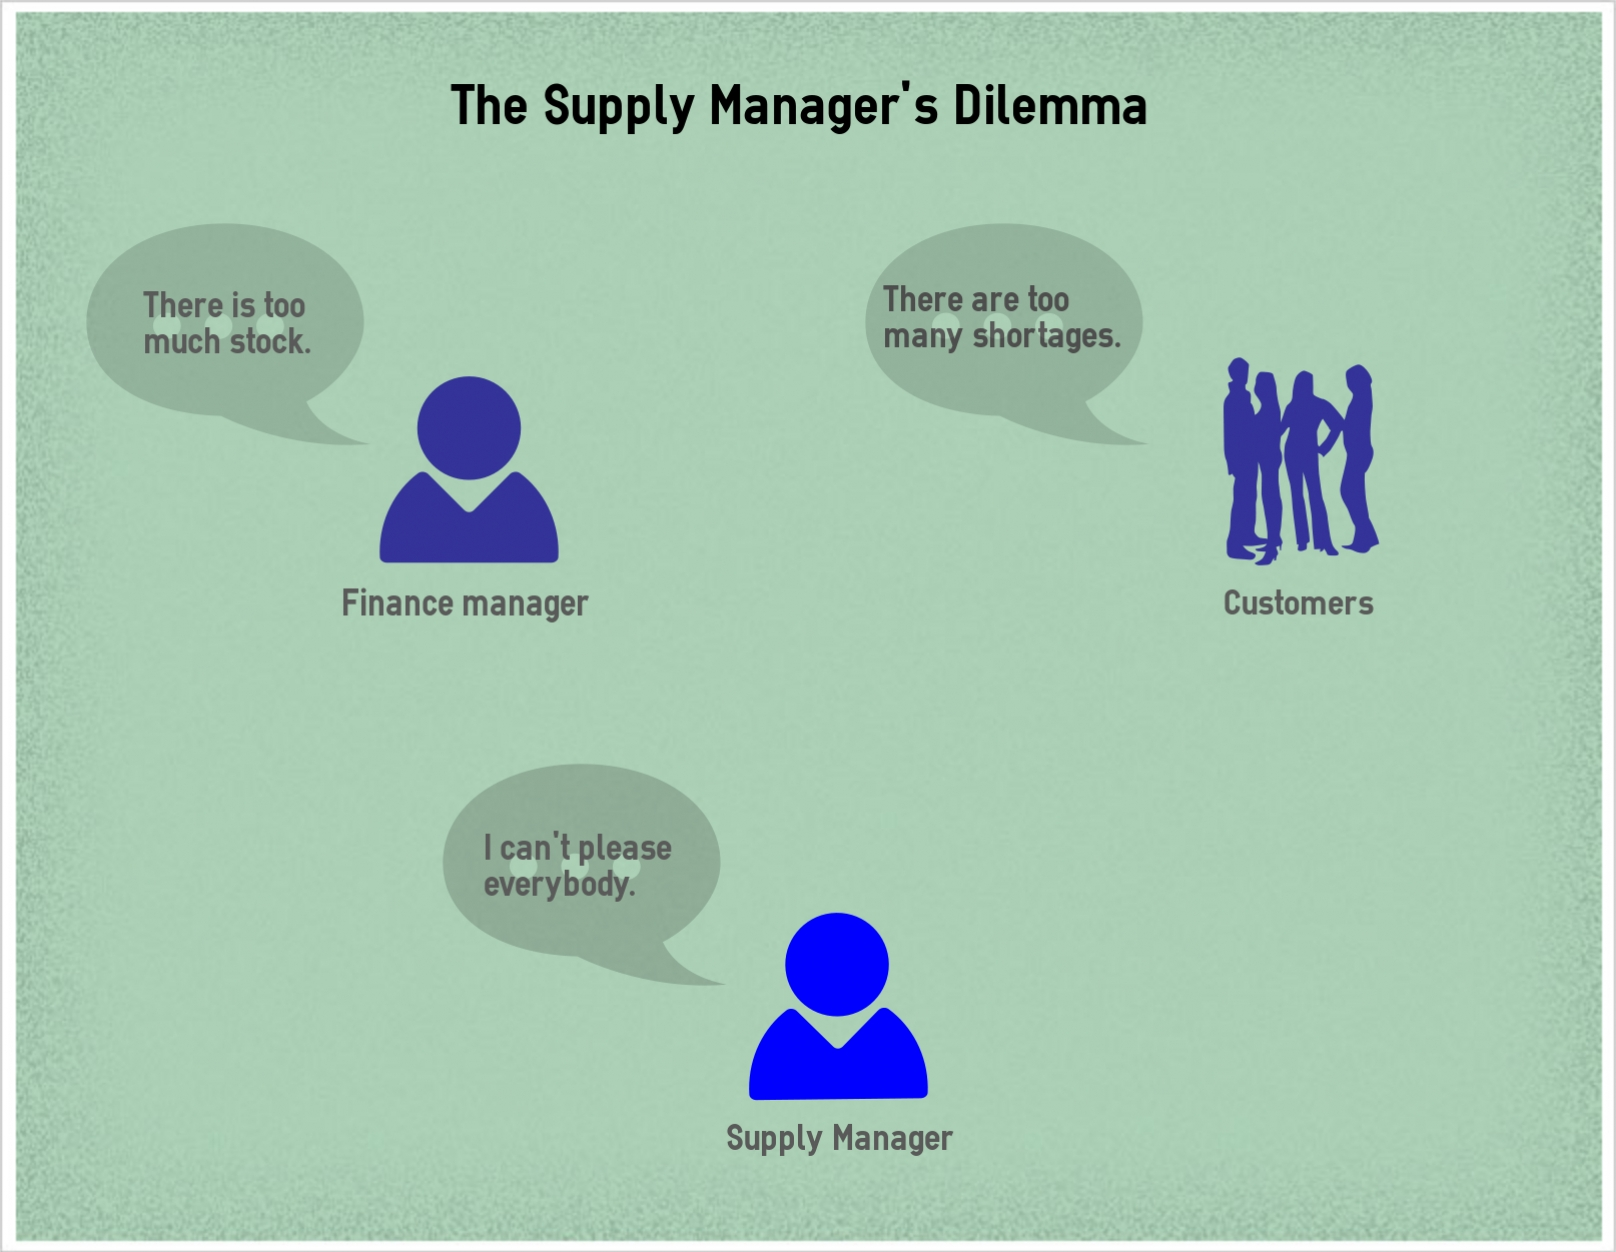 The Supply Manager's Dilemma